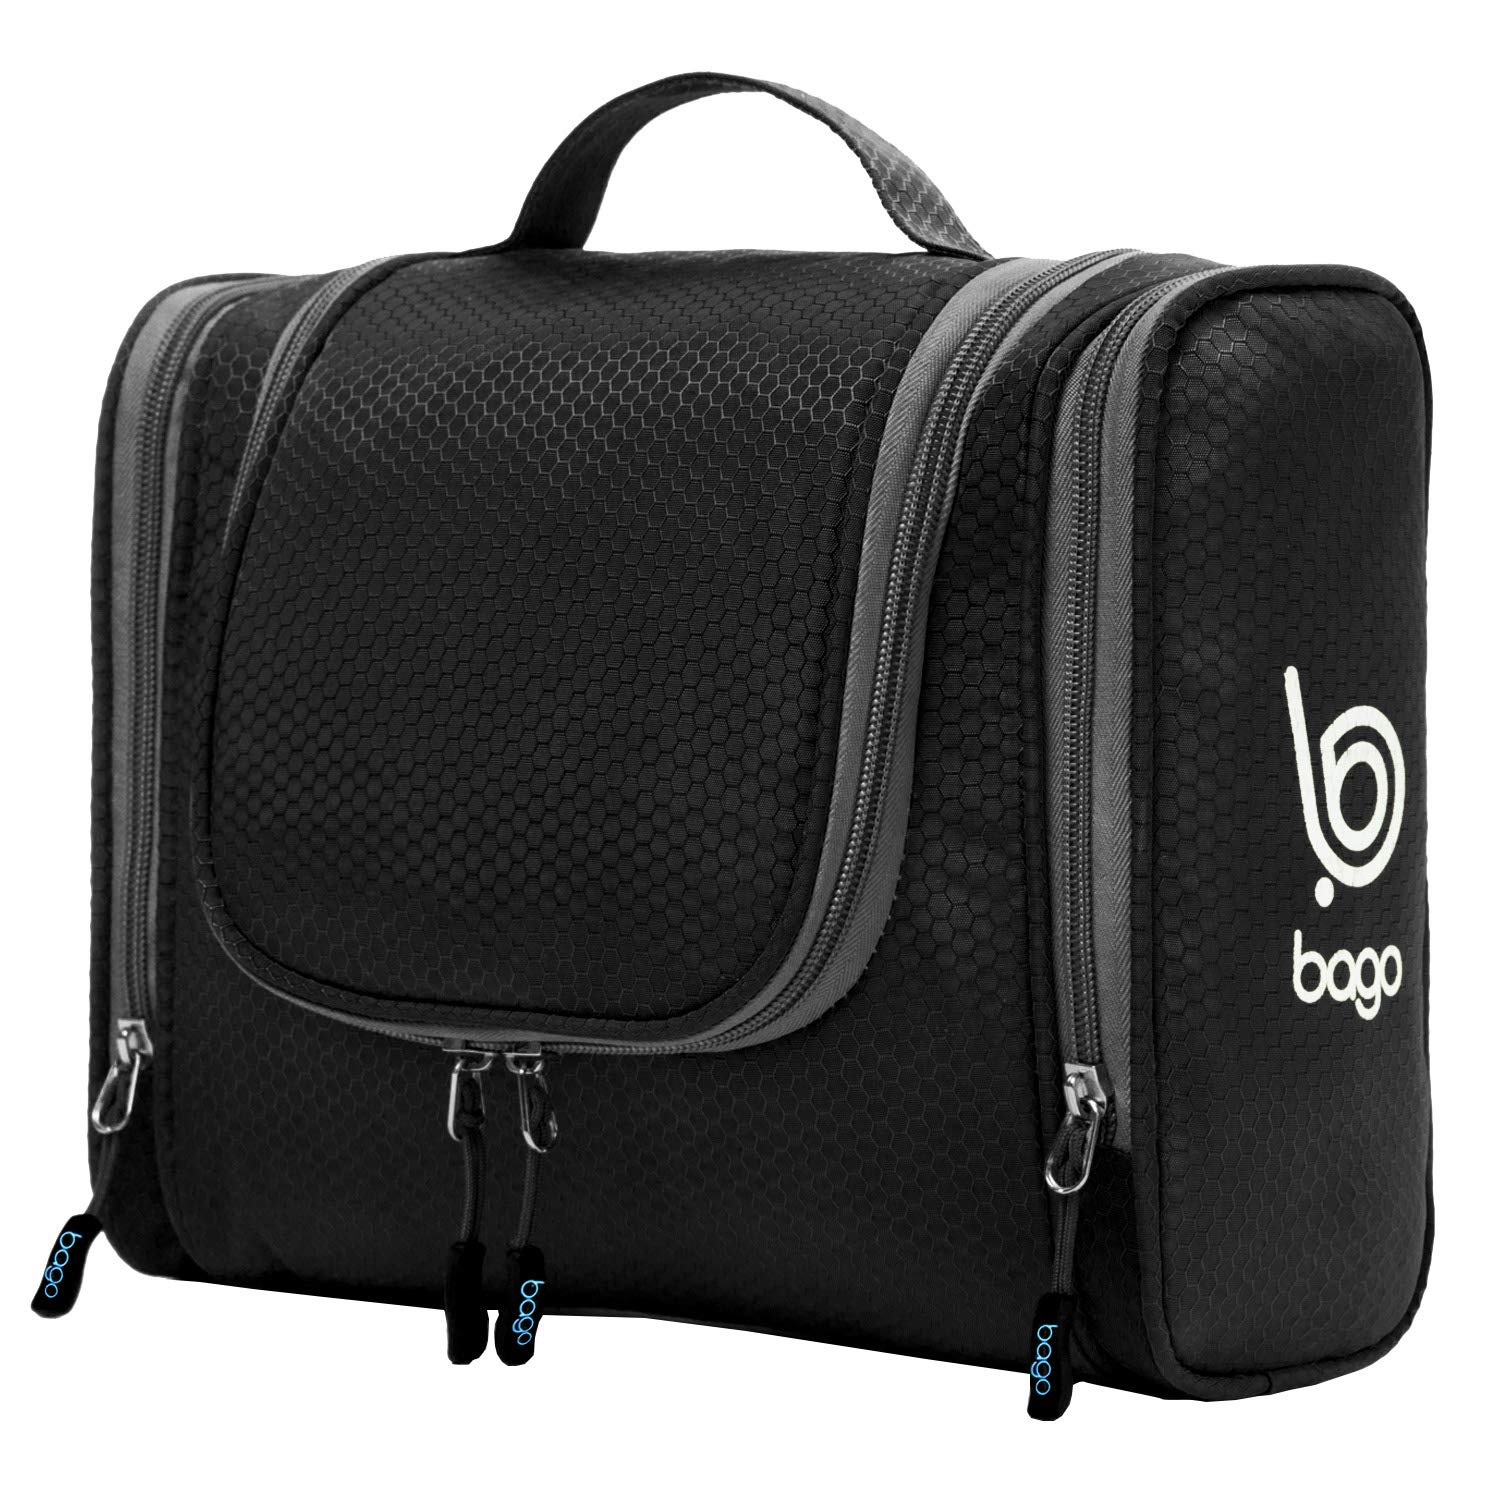 Bago Hanging Toiletry Bag For Women & Men - Travel Bags for Toiletries/Leak Proof/Hanging Hook/Inner Organization to Keep Items From Moving - Pack Like a PRO (Black) by bago